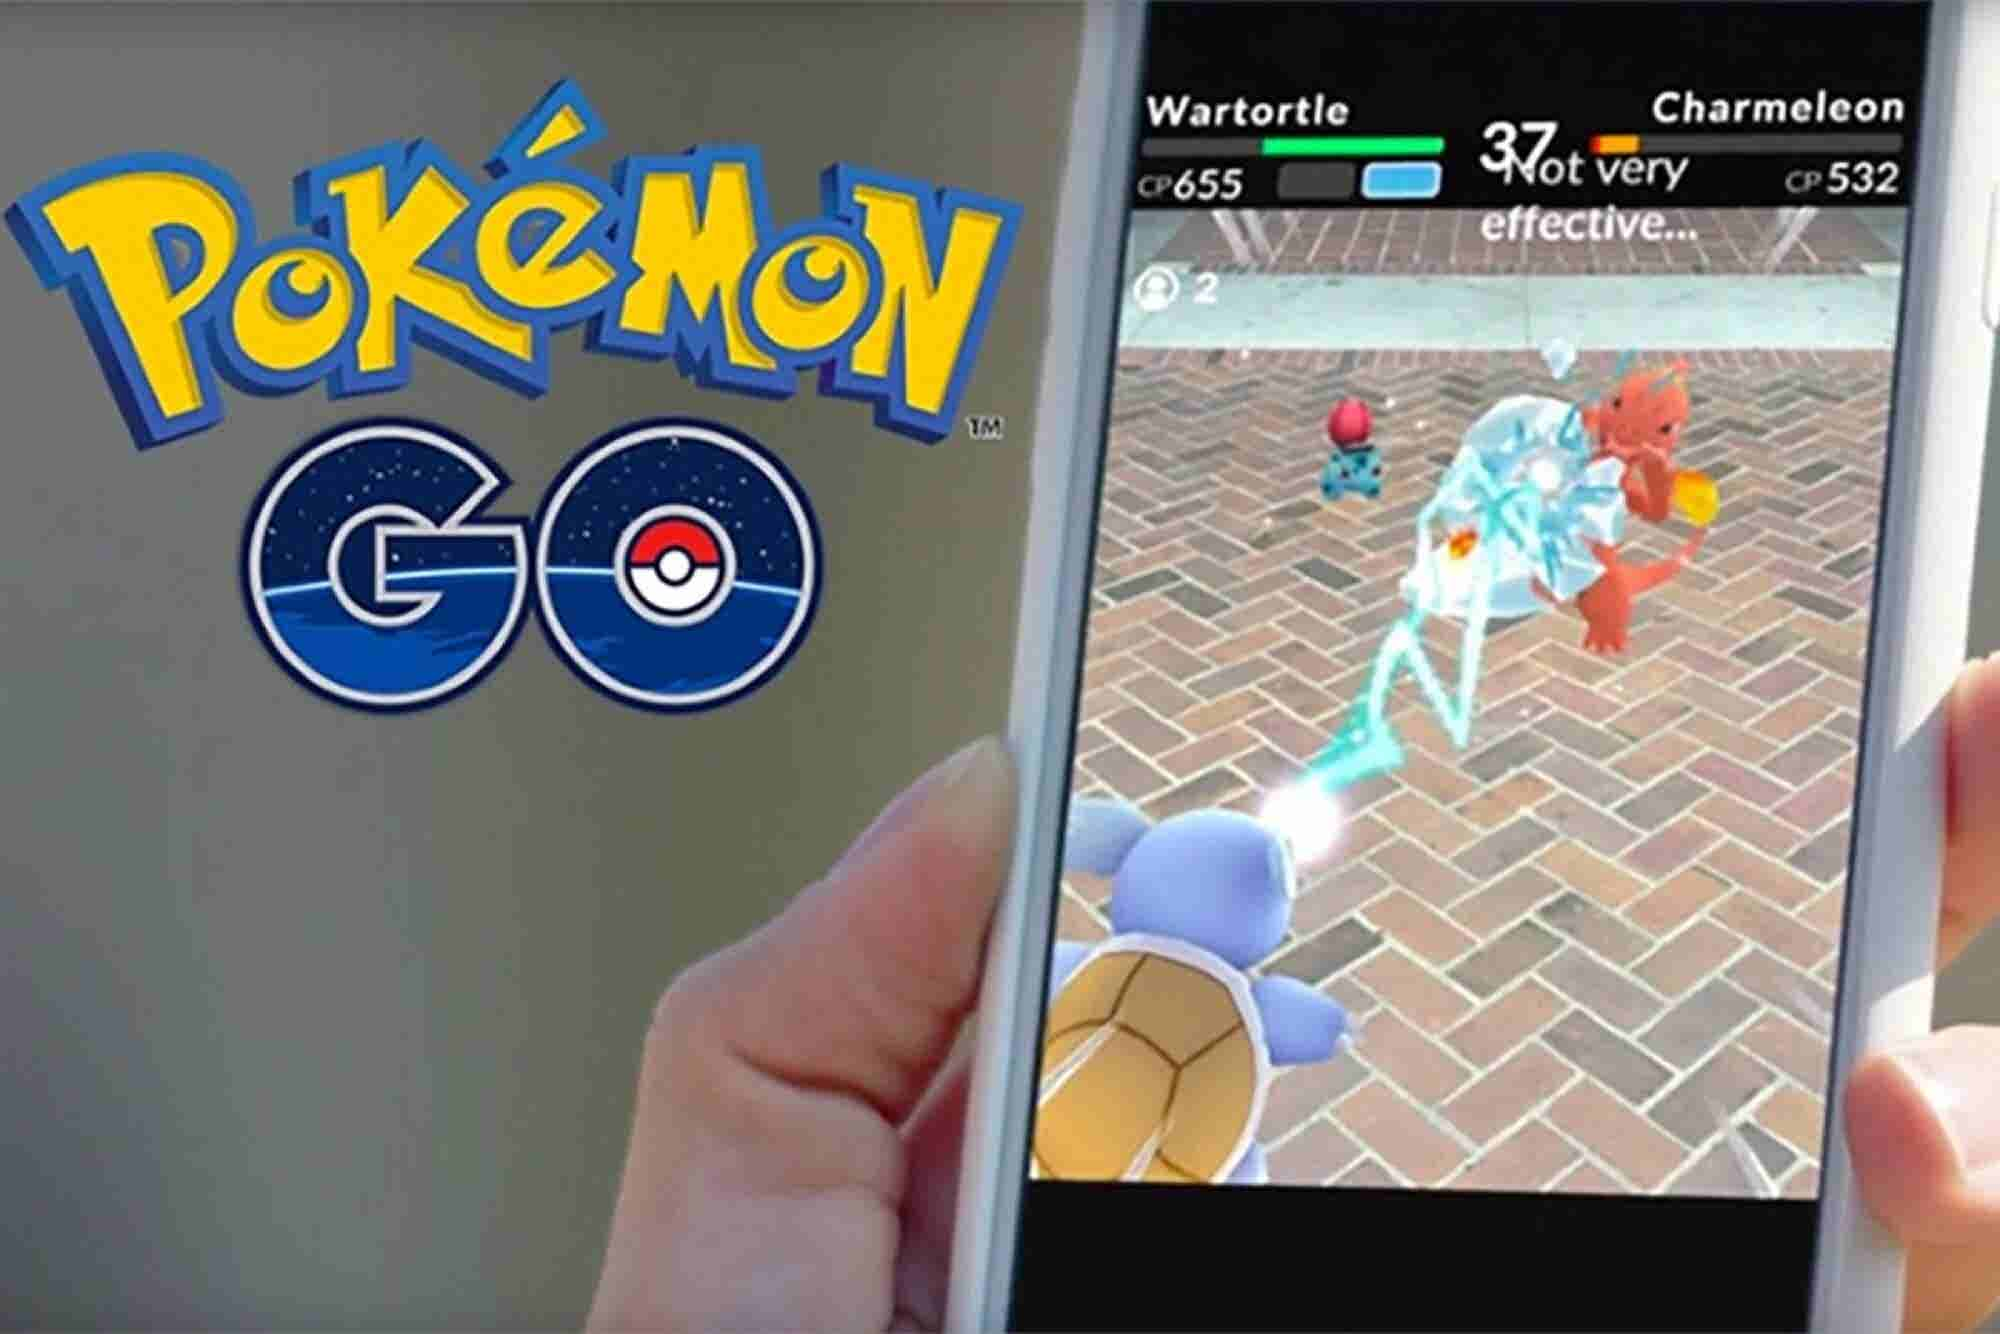 Congress: Is Pokémon Go Catching All Your Mobile Data?